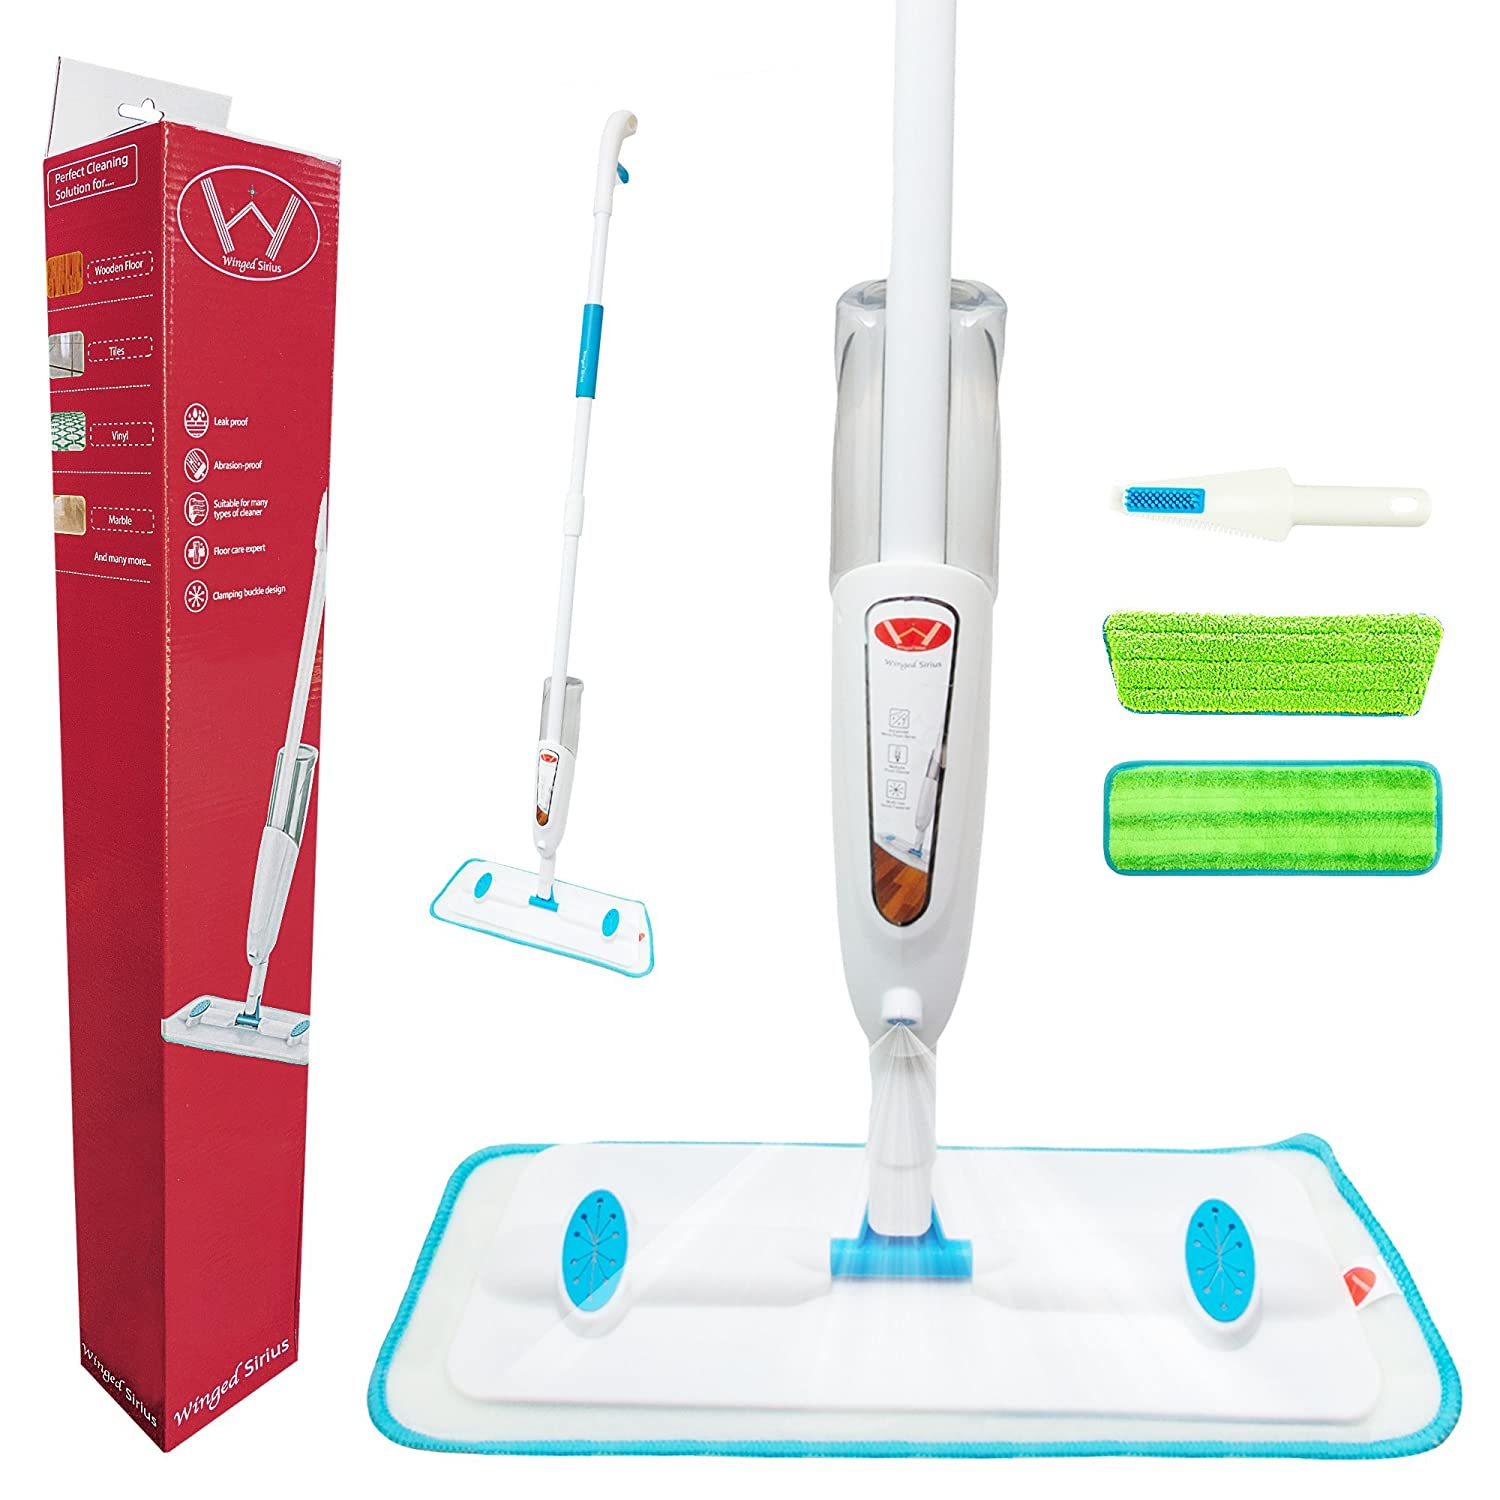 * Latest 4 in 1 Winged Sirius Spray Mop with refillable Bottle. 2 Reusable Microfibre Pads and 1 Multifunctional Dirt Scraper .Patented High Quality Atomised Spray System.360 Degree Swivel Head.Perfect spray mop for hard wood ,laminate ,marble ,vinyl or a